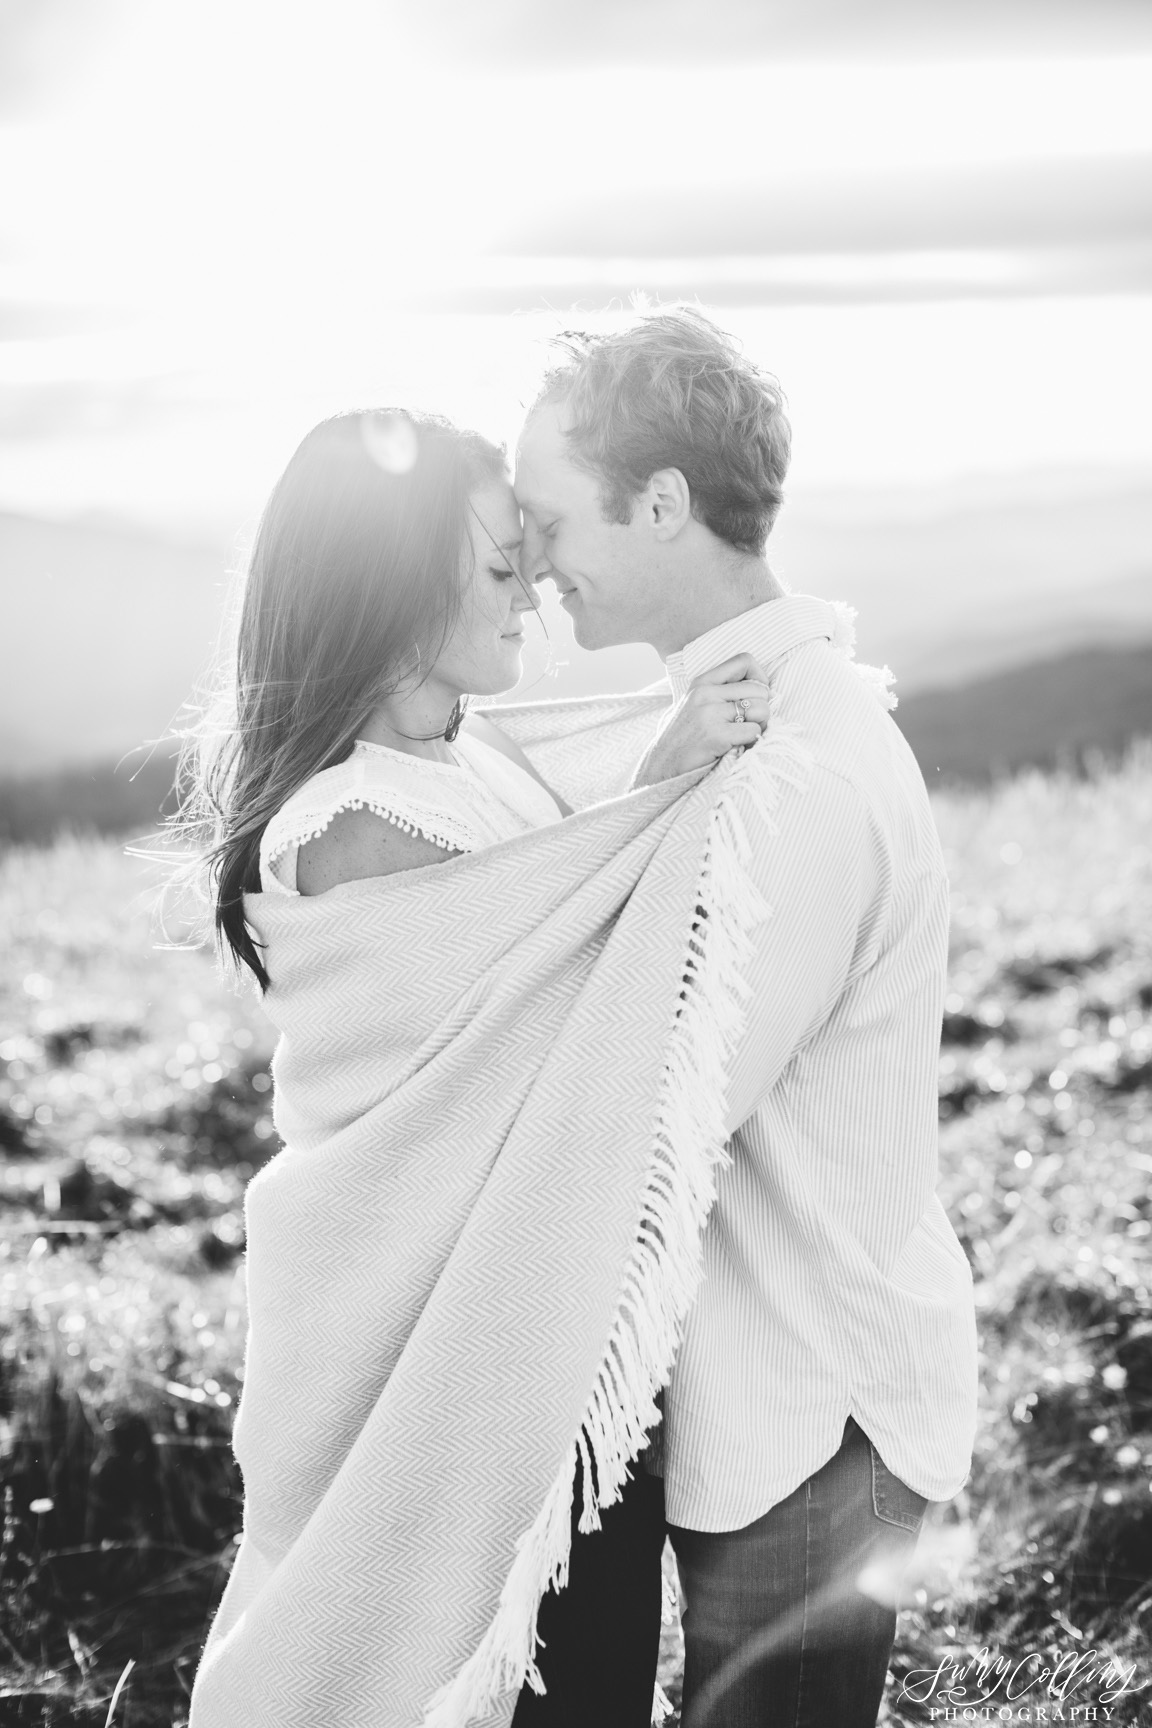 poses, couples, outdoor, max patch, Knoxville, Tennessee, engagement, sunset, evening, love, vibrant, colorful, bright, creative, romantic, natural, light and airy, natural light, passion, inspiration, intimate, outfits, fountain, woods, field, sunrise, windy, North Carolina, black and white, cuddling